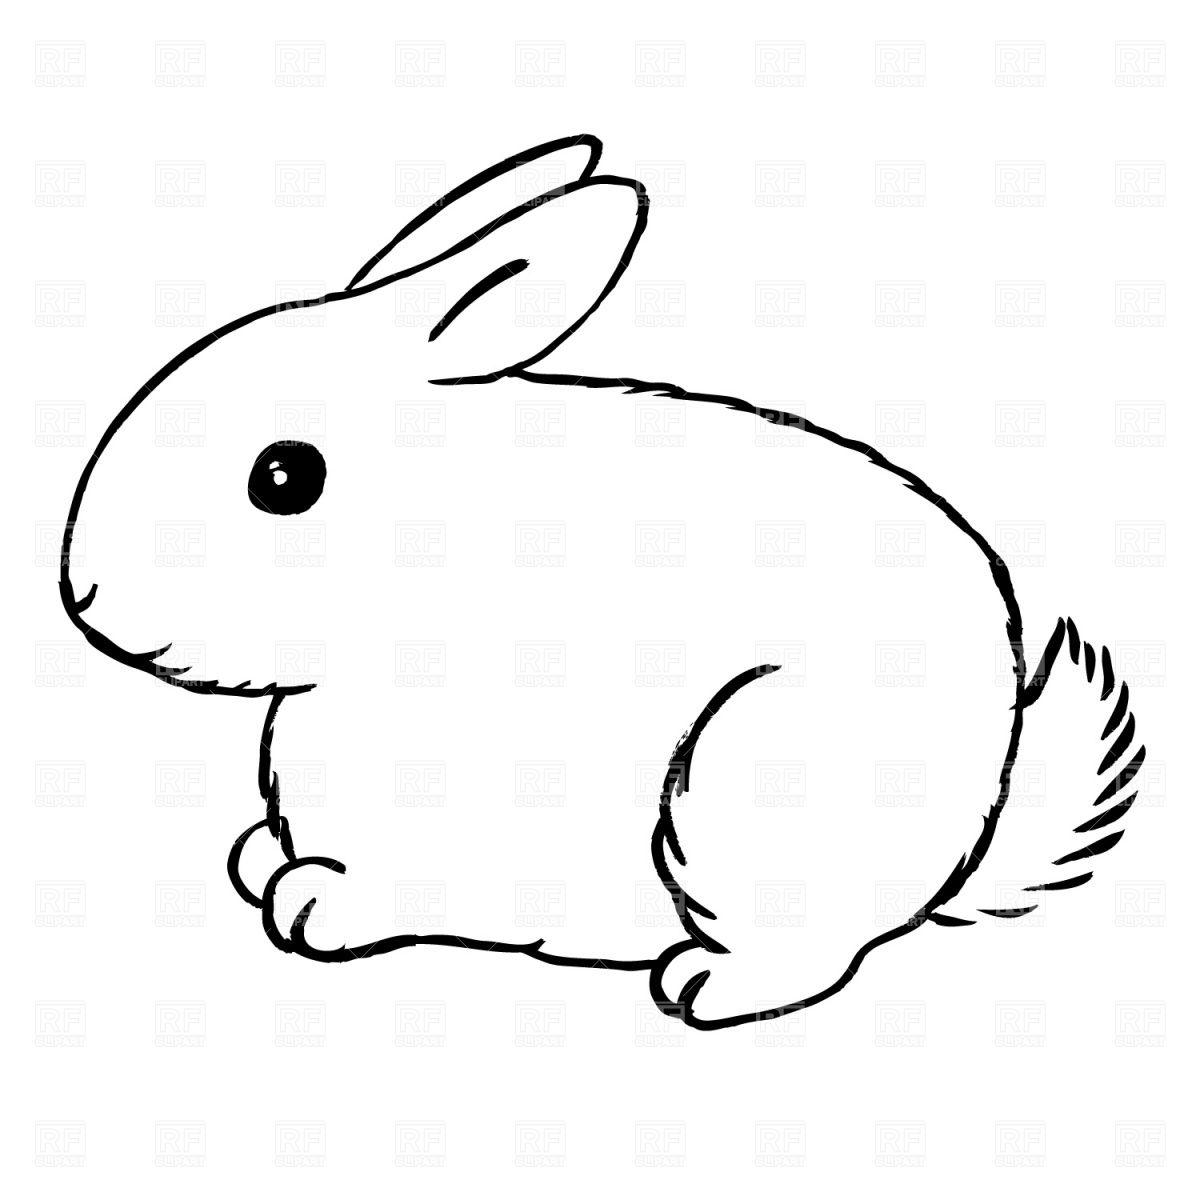 Bunny Stock Vector Image.